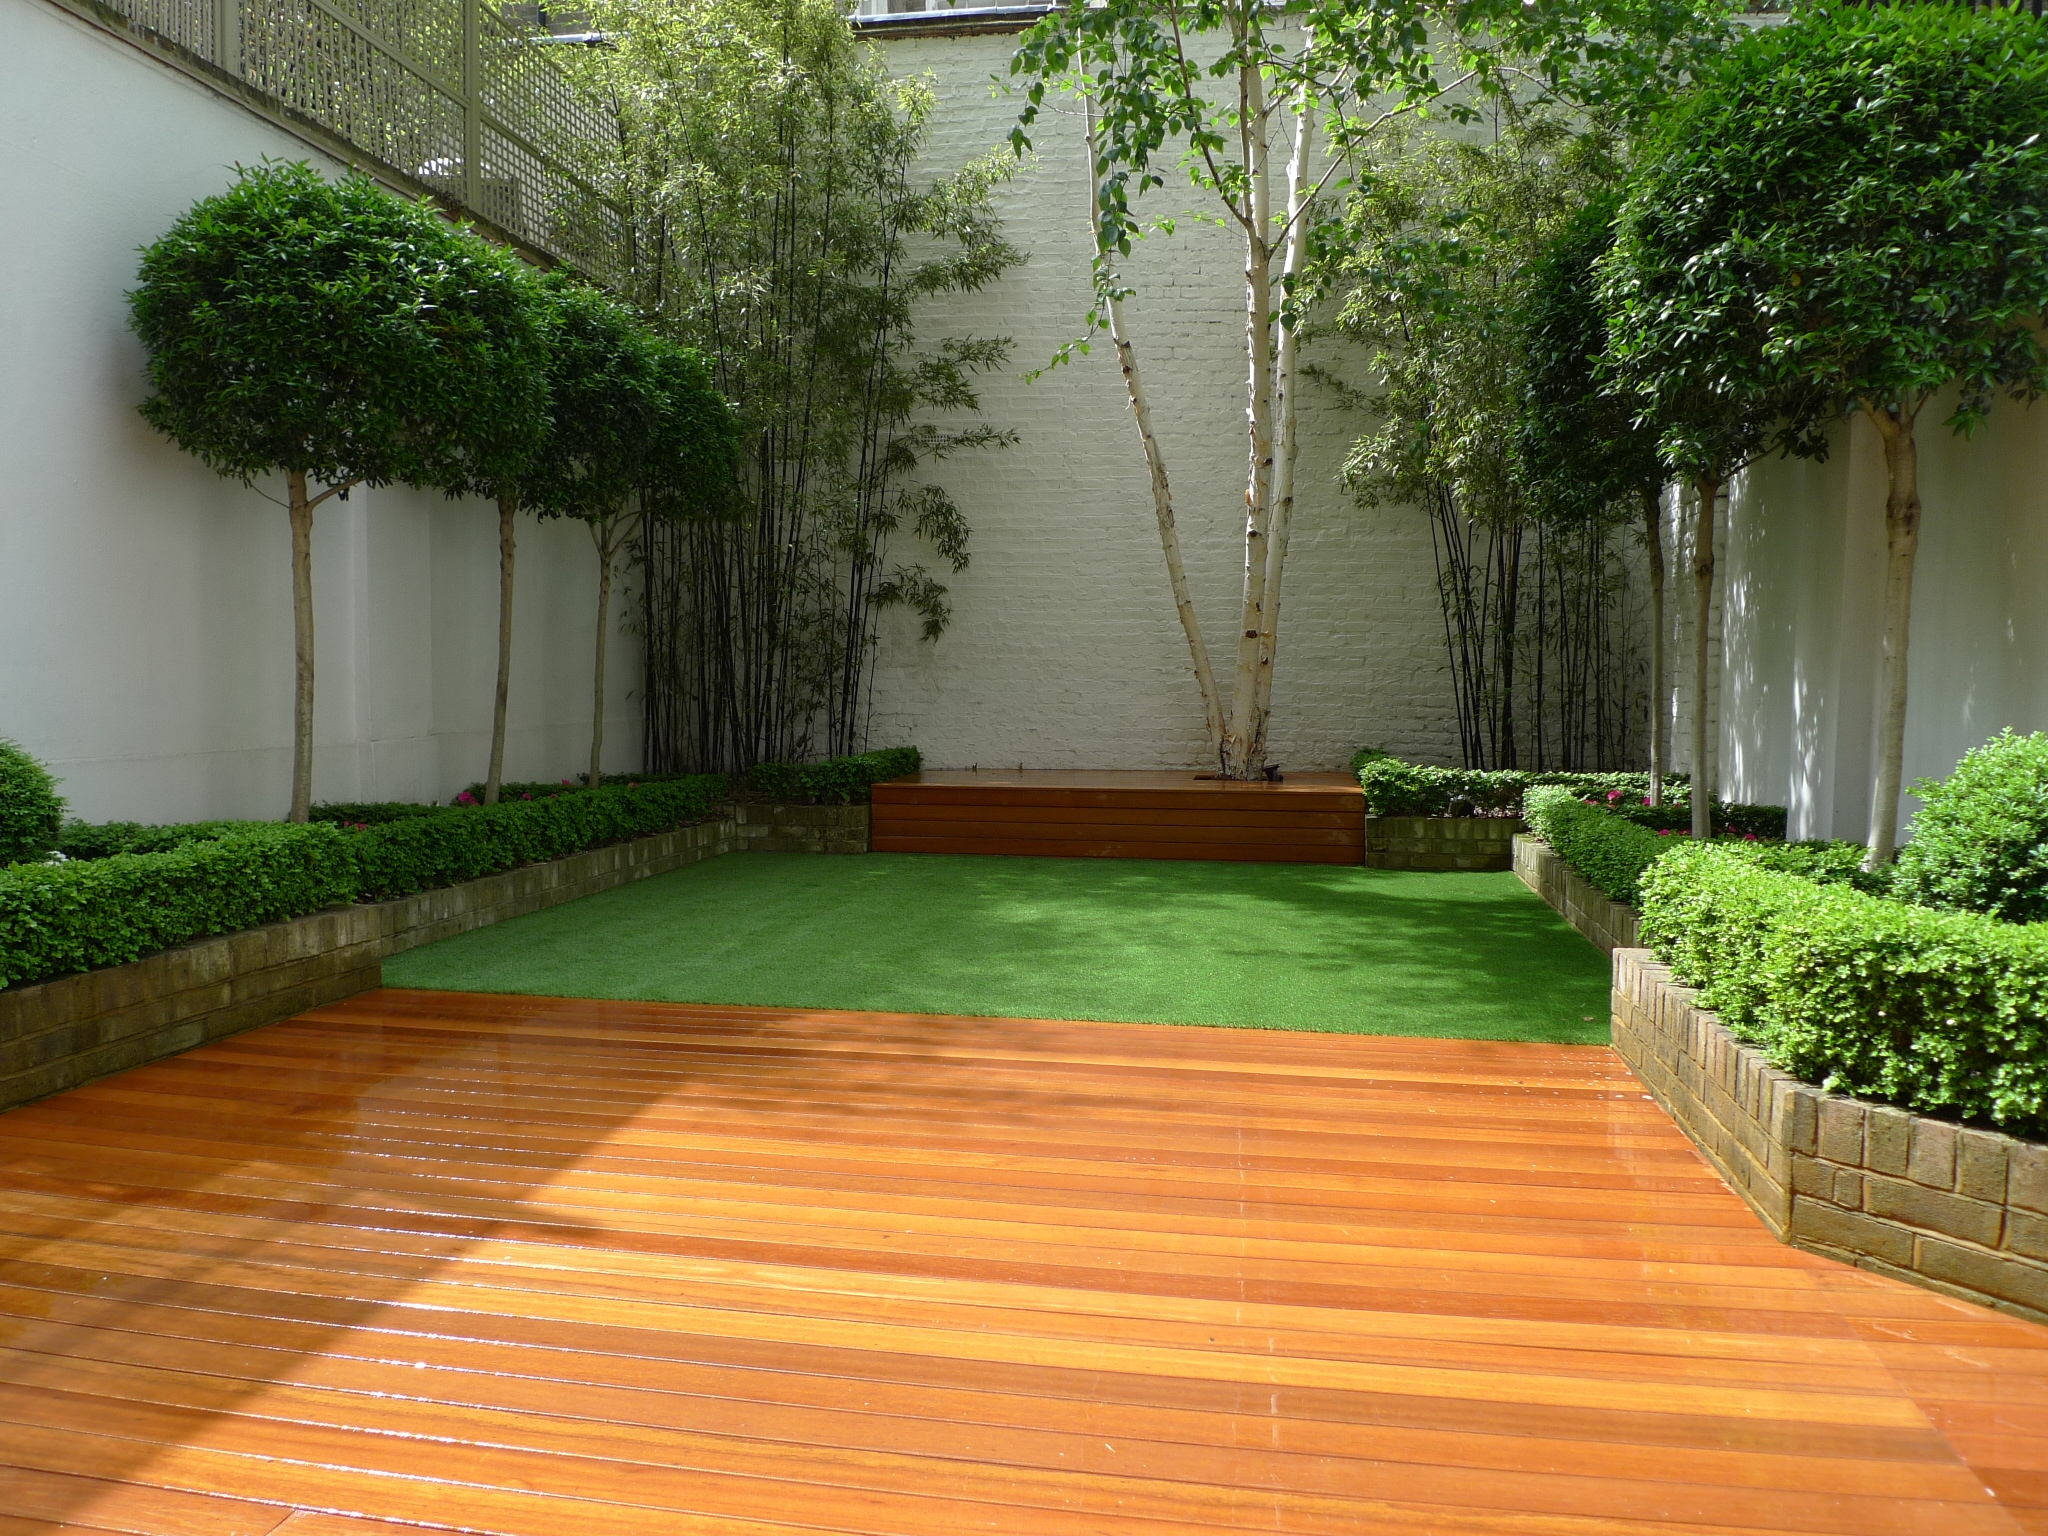 Chelsea garden design hardwood decking artificial grass for Backyard planting designs